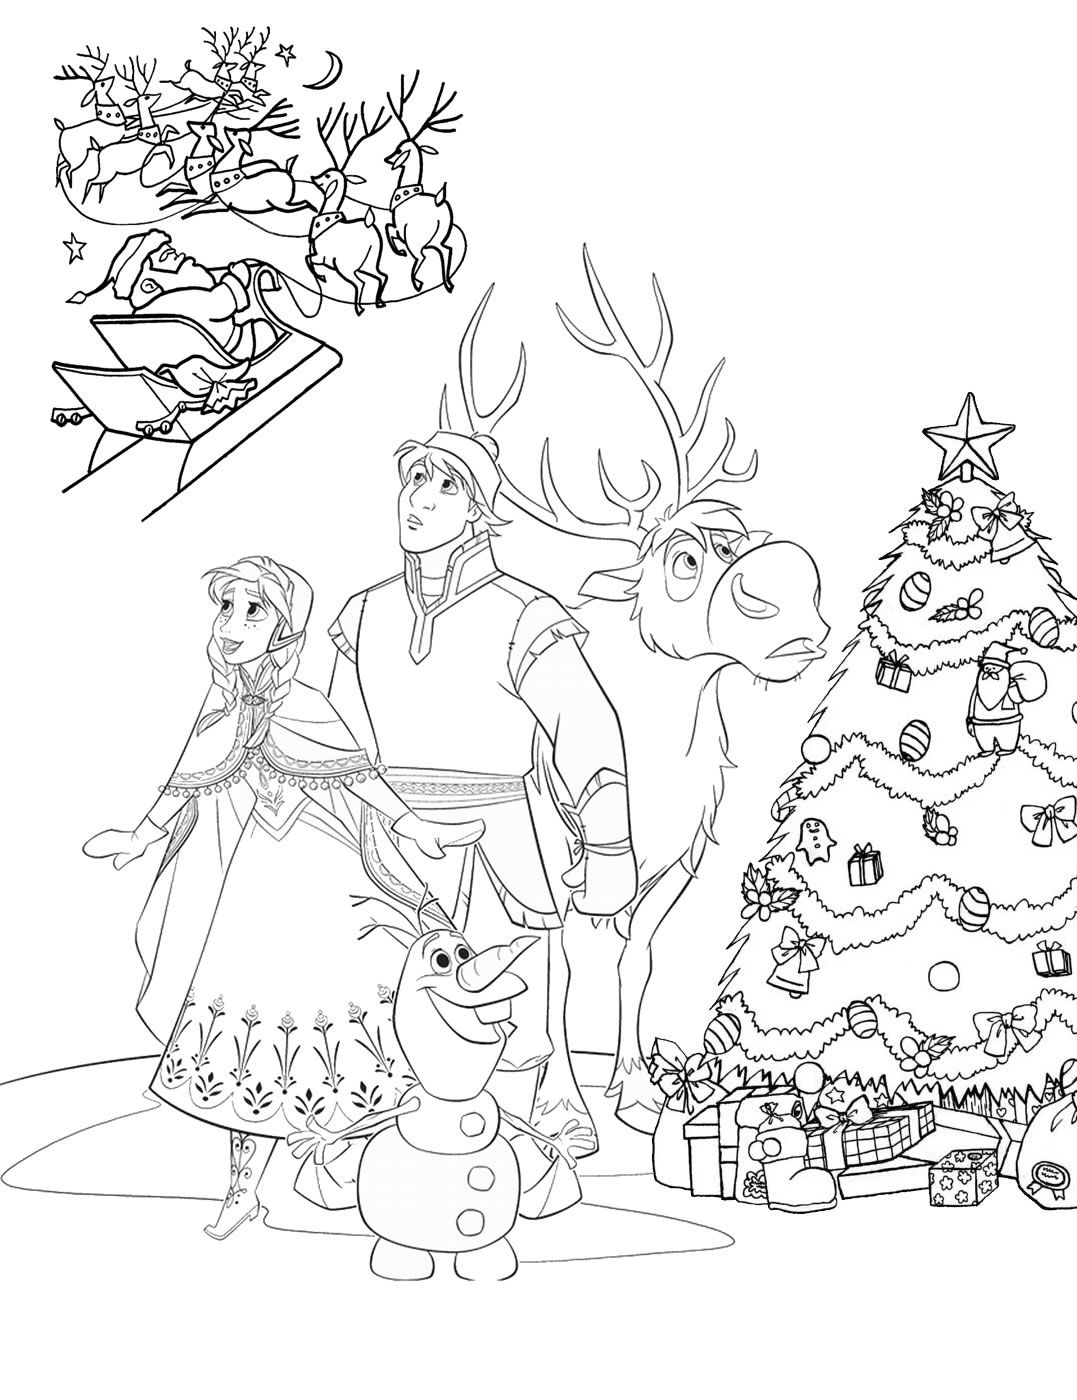 Frozen Christmas Coloring Pages Christmas Coloring Pages Printable Christmas Coloring Pages Elsa Coloring Pages